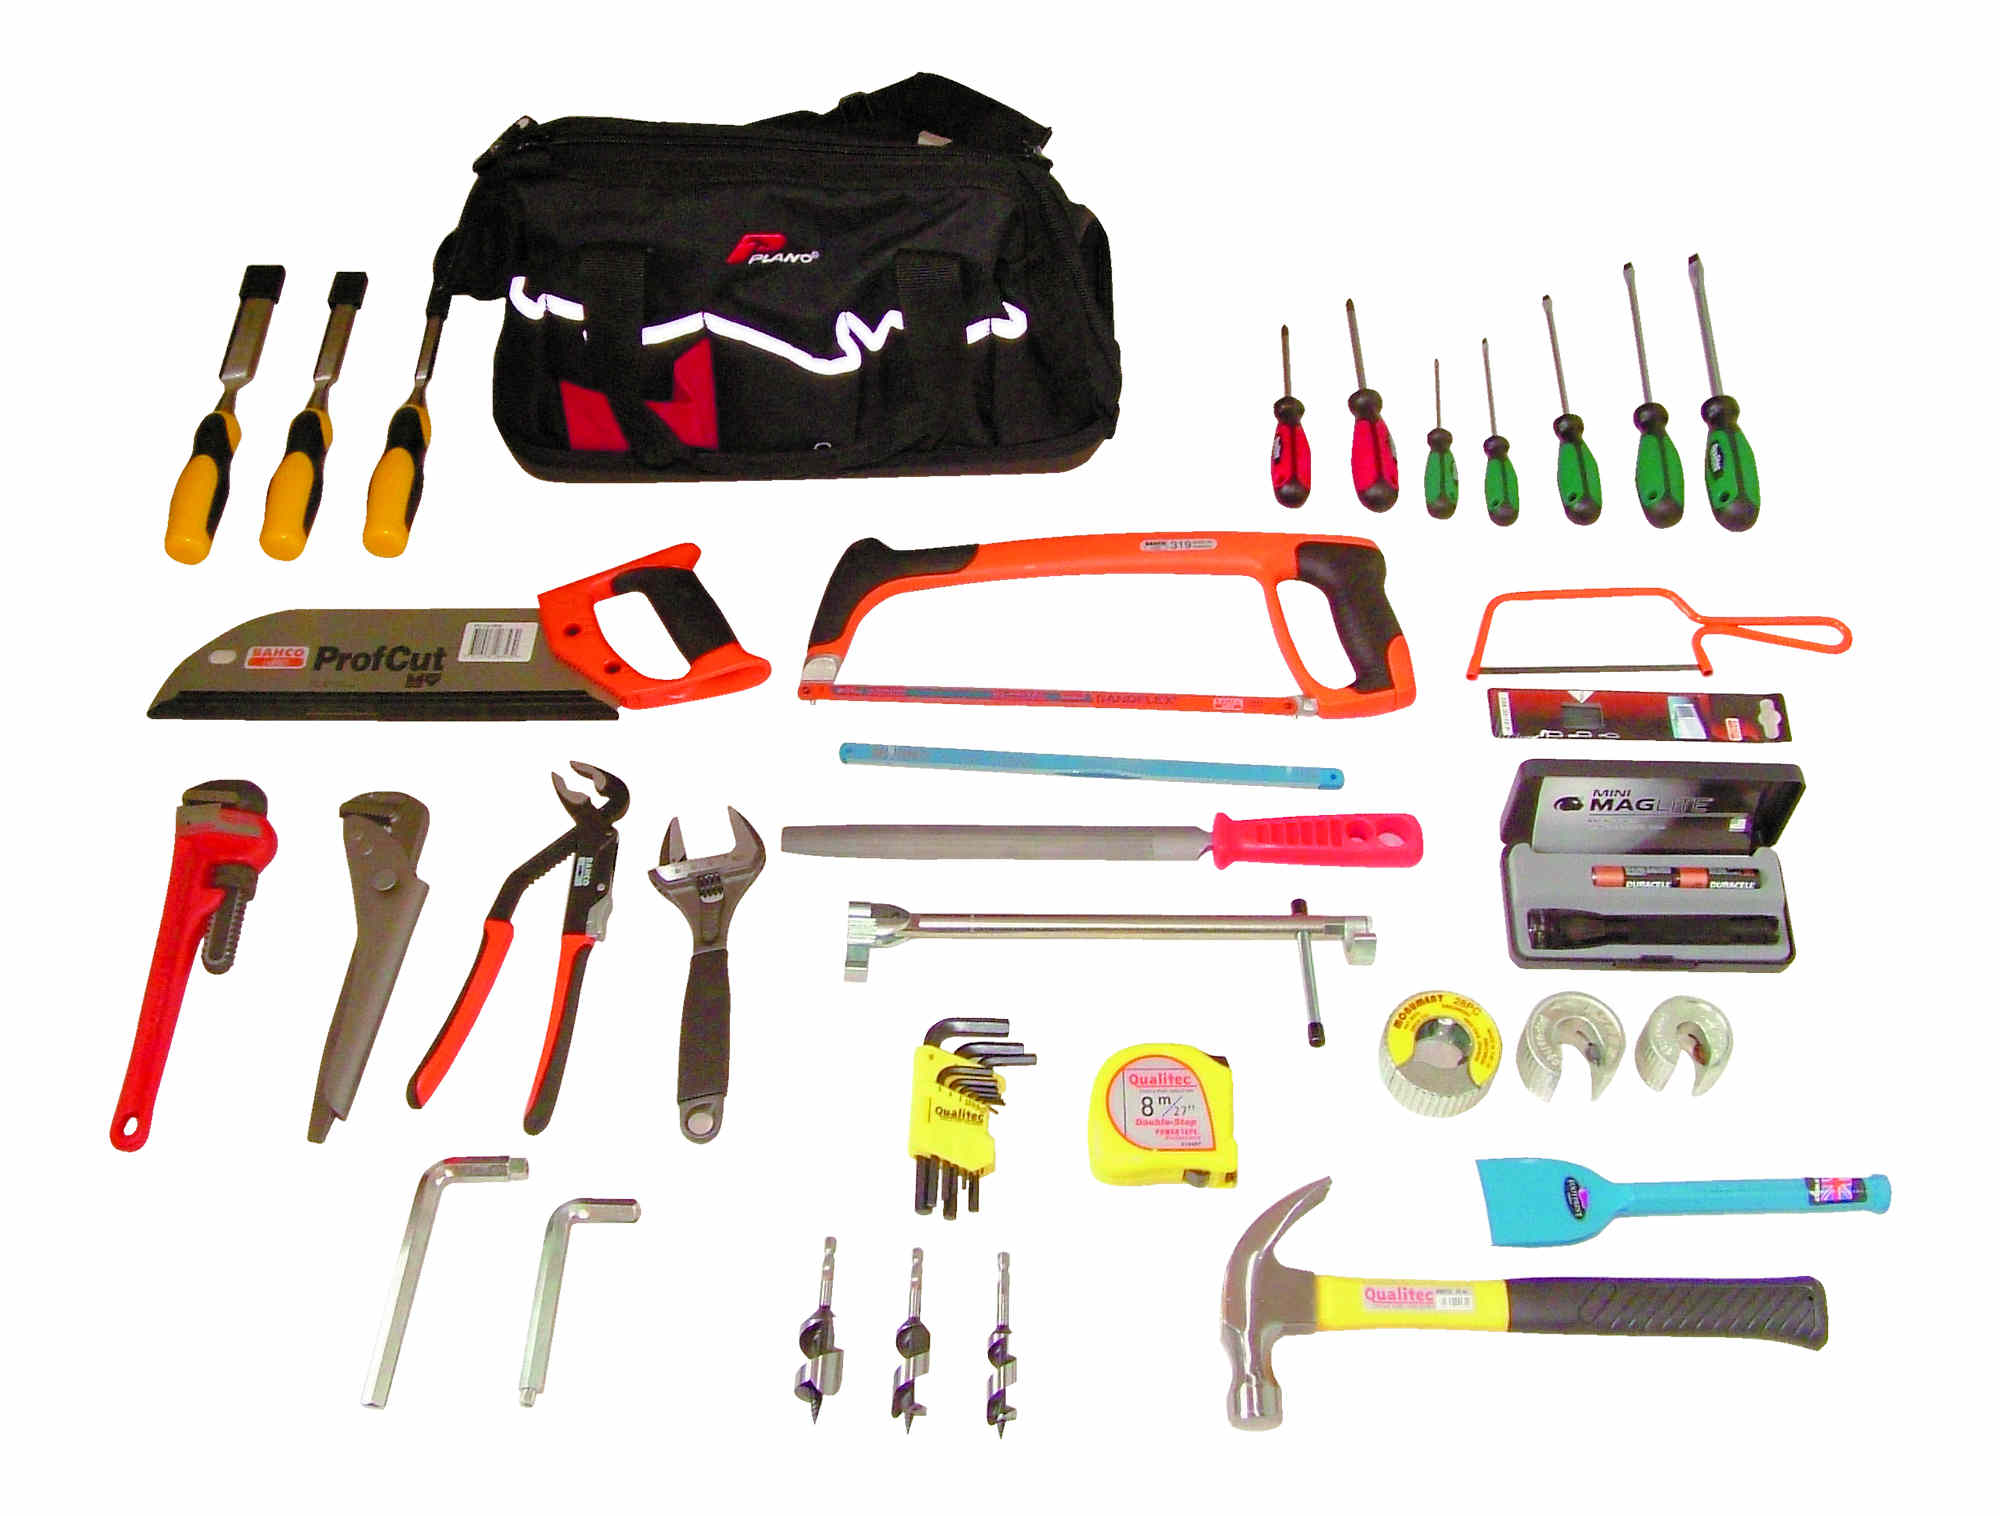 What's In a Plumber's Toolbox?